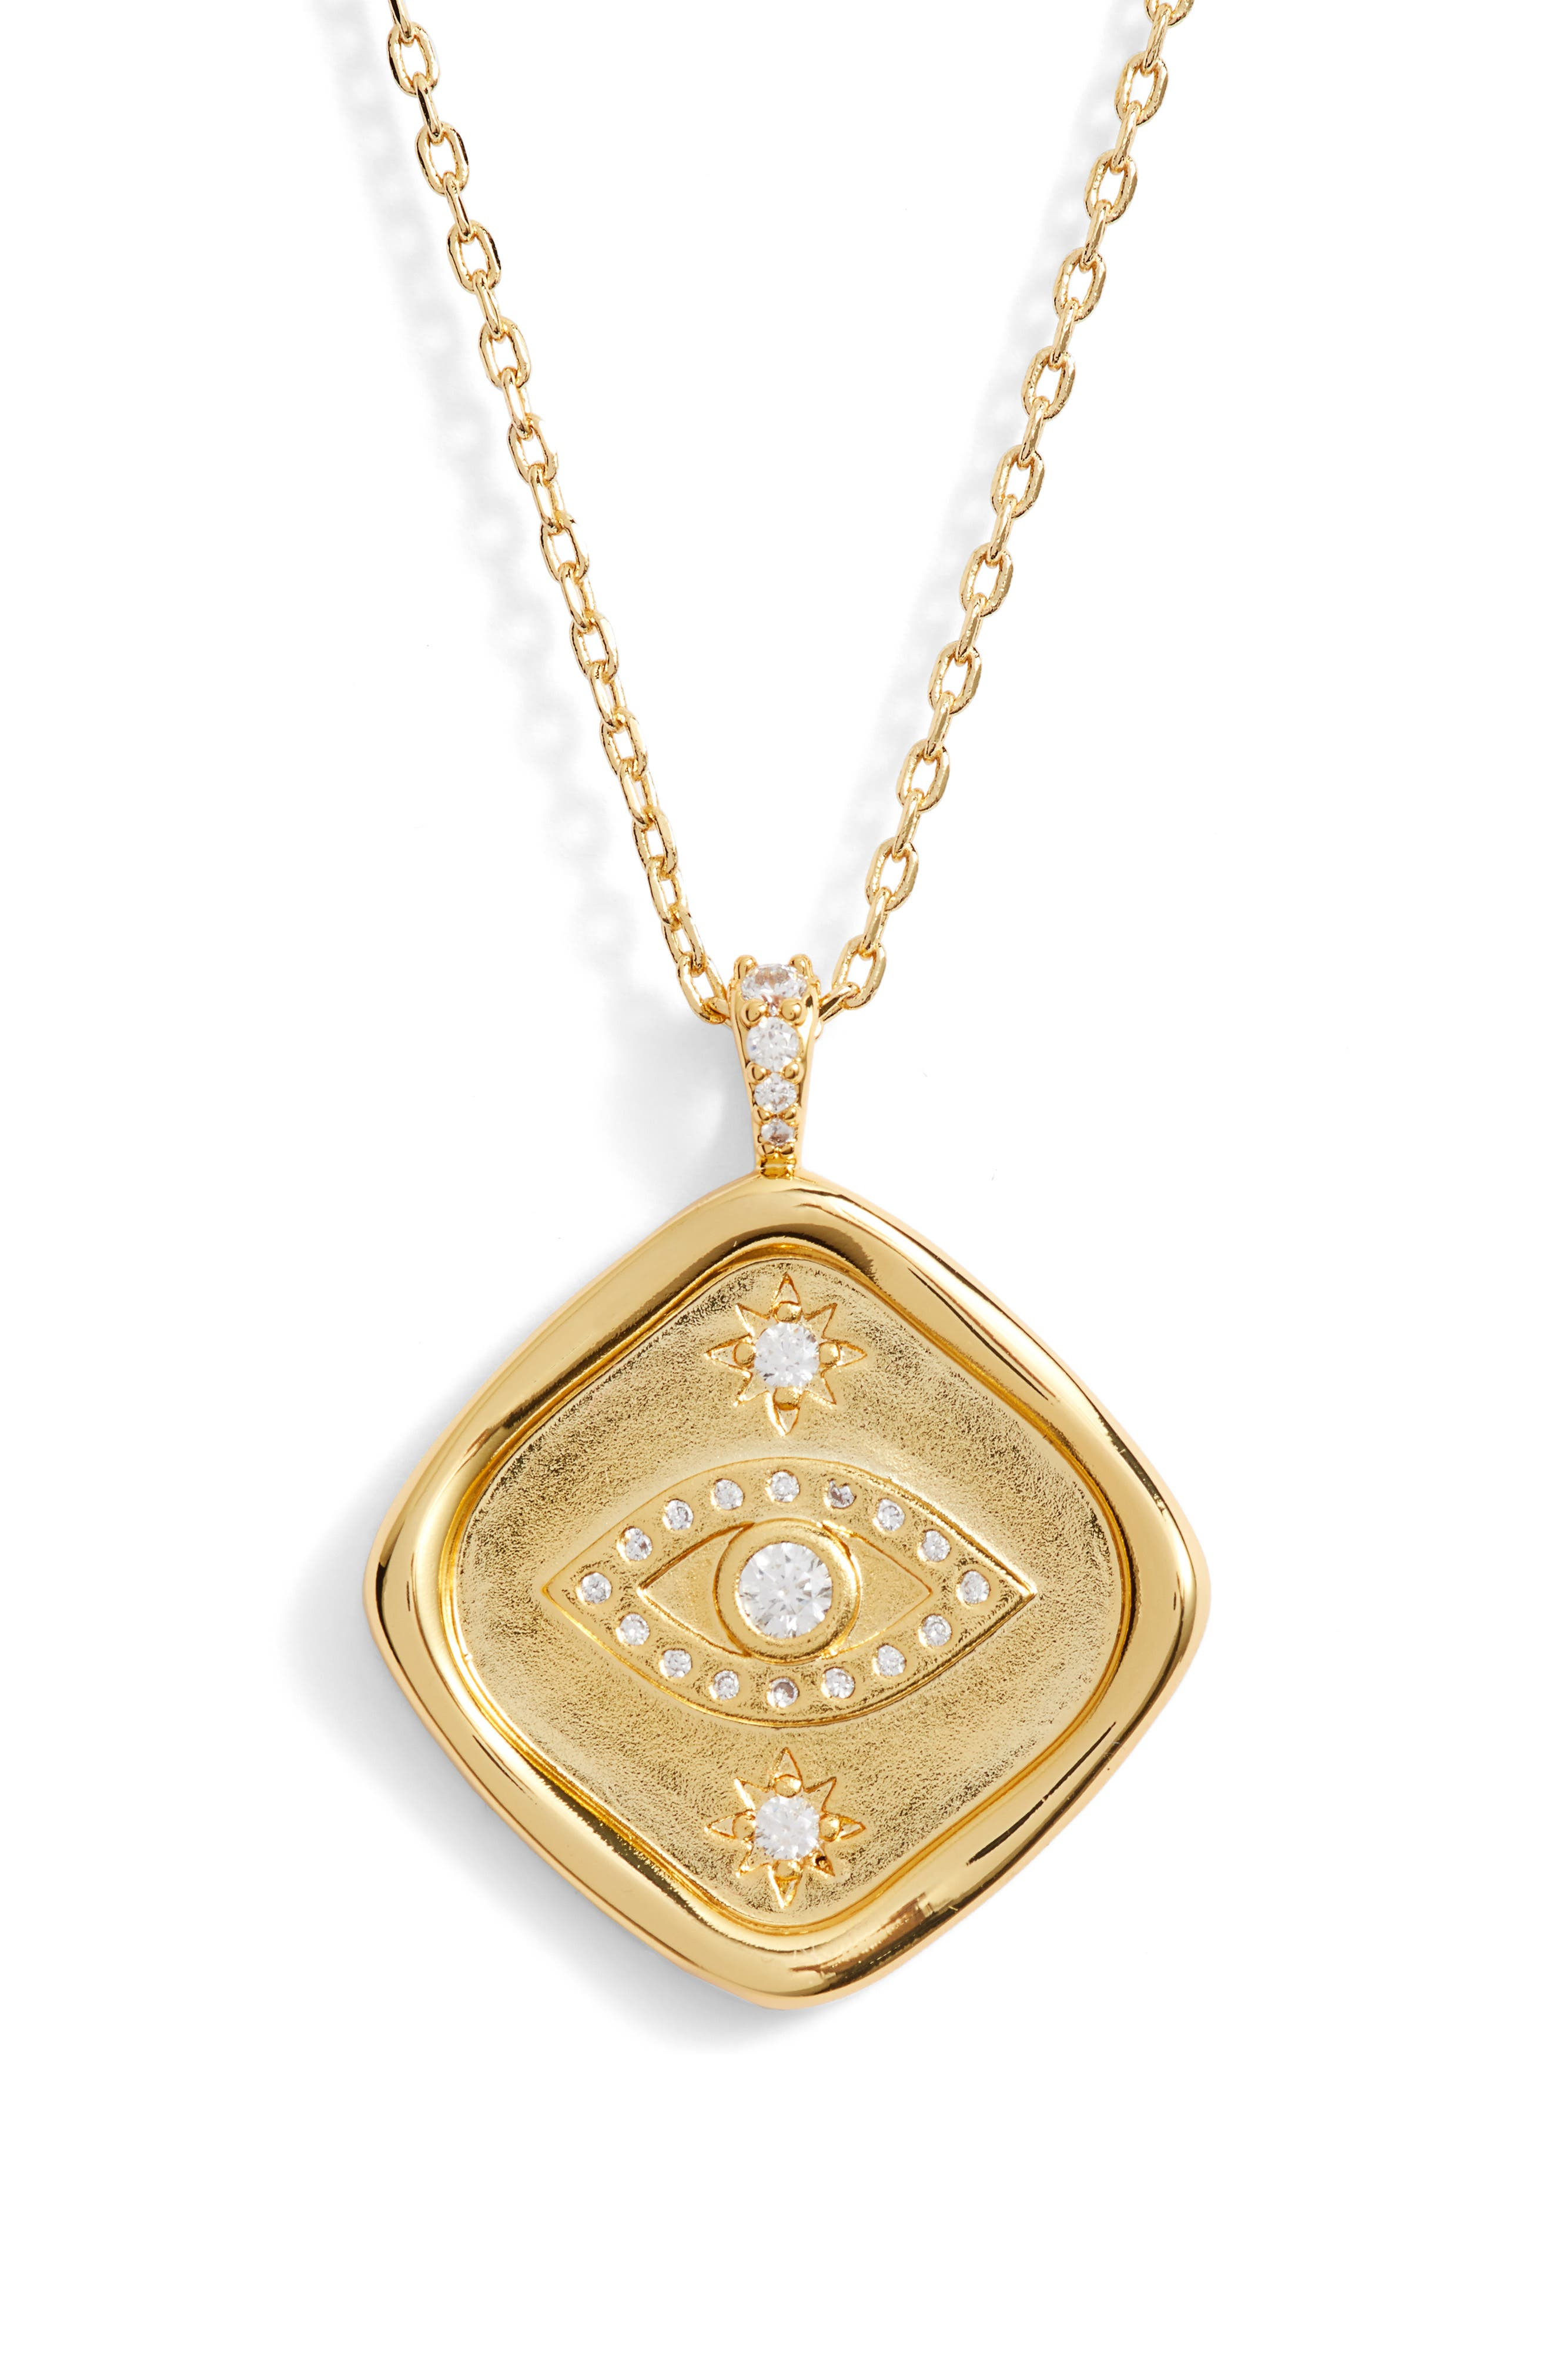 LULU DK Evil Eye Protection Crystal Pendant Necklace in Gold